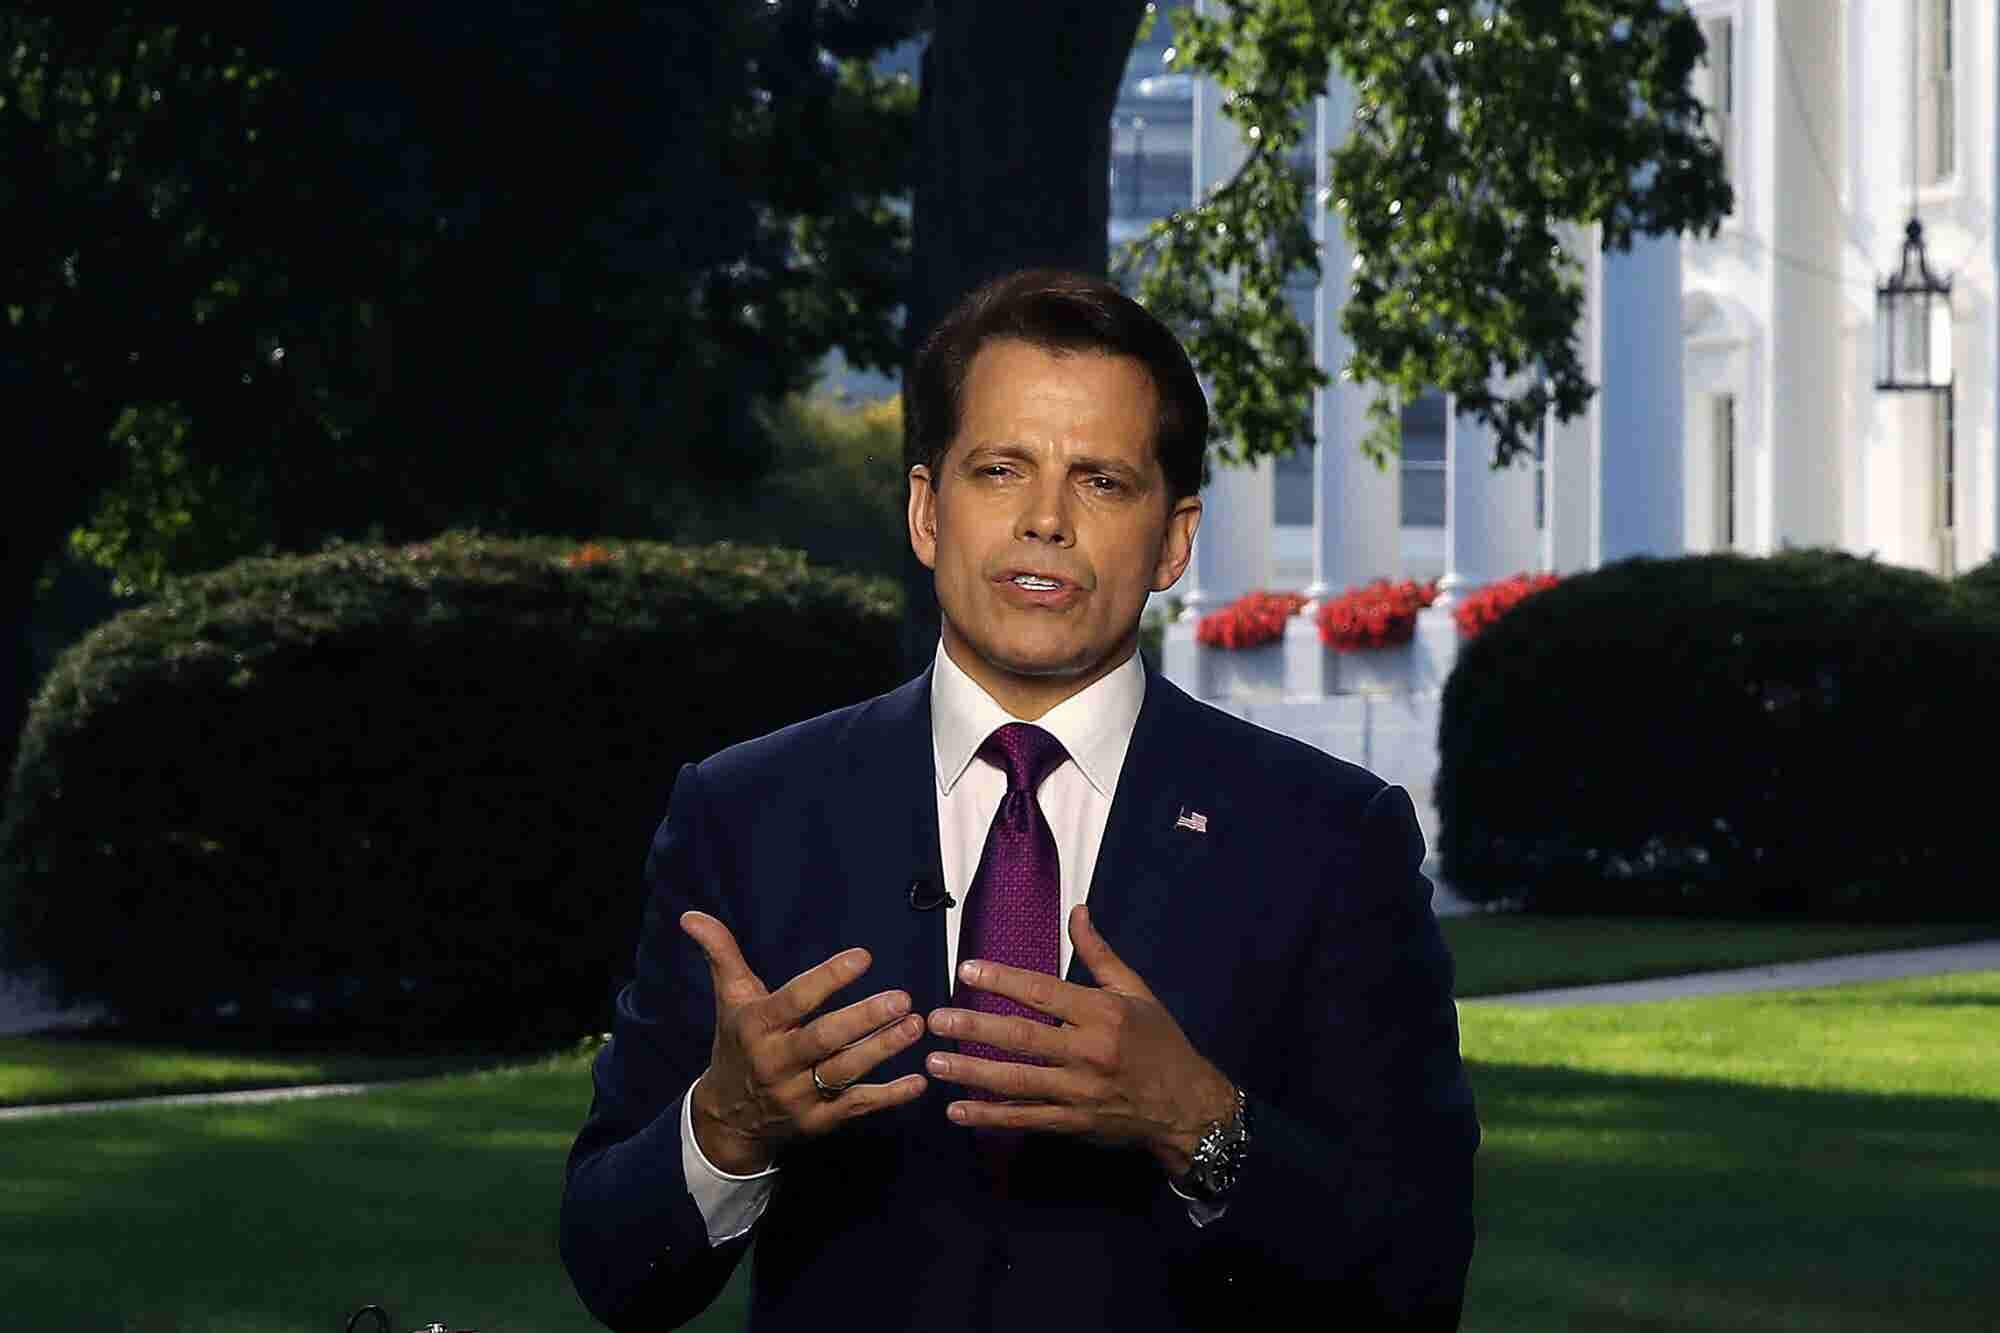 The Mooch: 'Trump Will Legalize Cannabis After the Midterms'